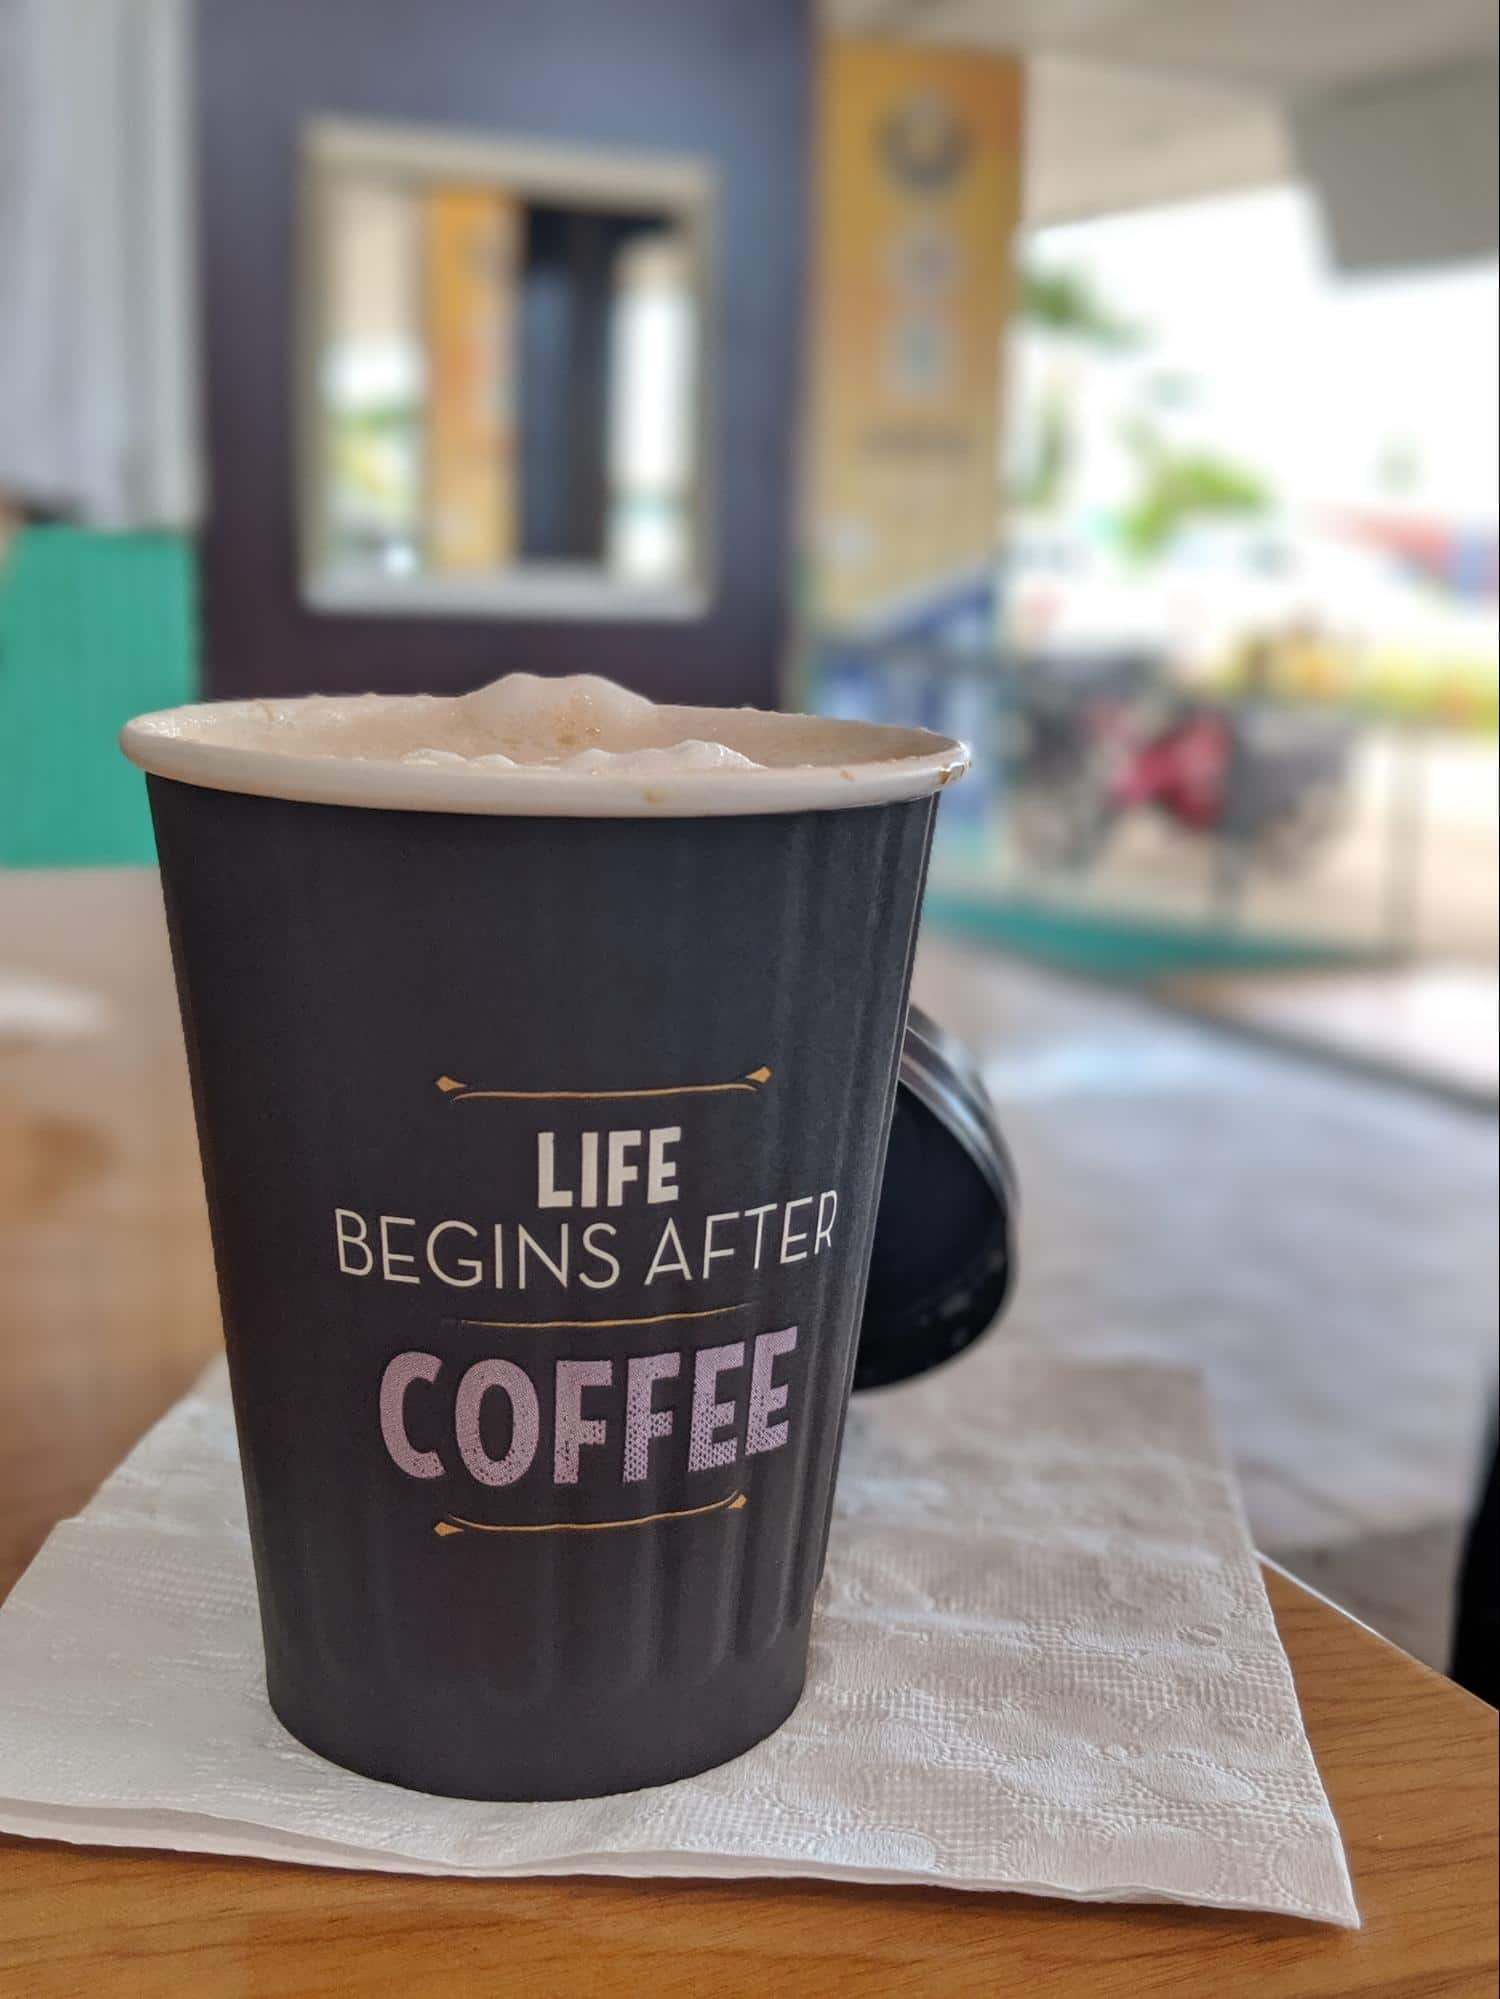 Latte from the Digicel container cafe